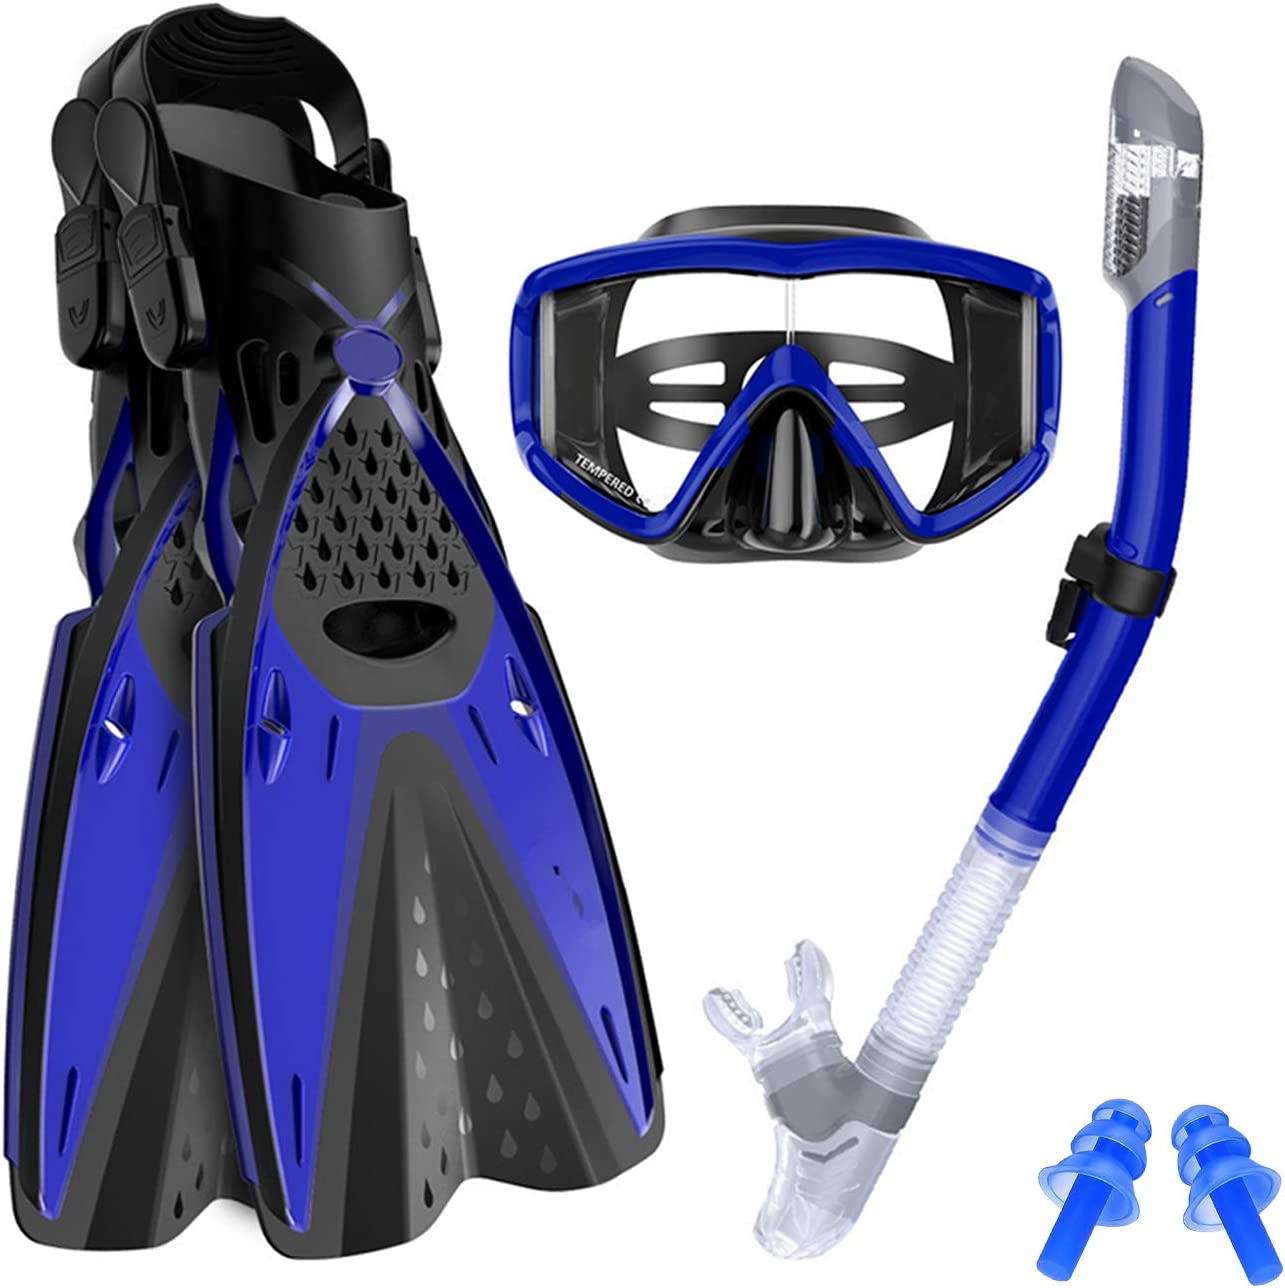 Breathing Tube for Adults and Kids Ertong Scuba Diving Gear Swimming Combo Set Waterproof and Anti-Fog Snorkel Mask+Adjustable Freediving Swimming Fins//Flippers